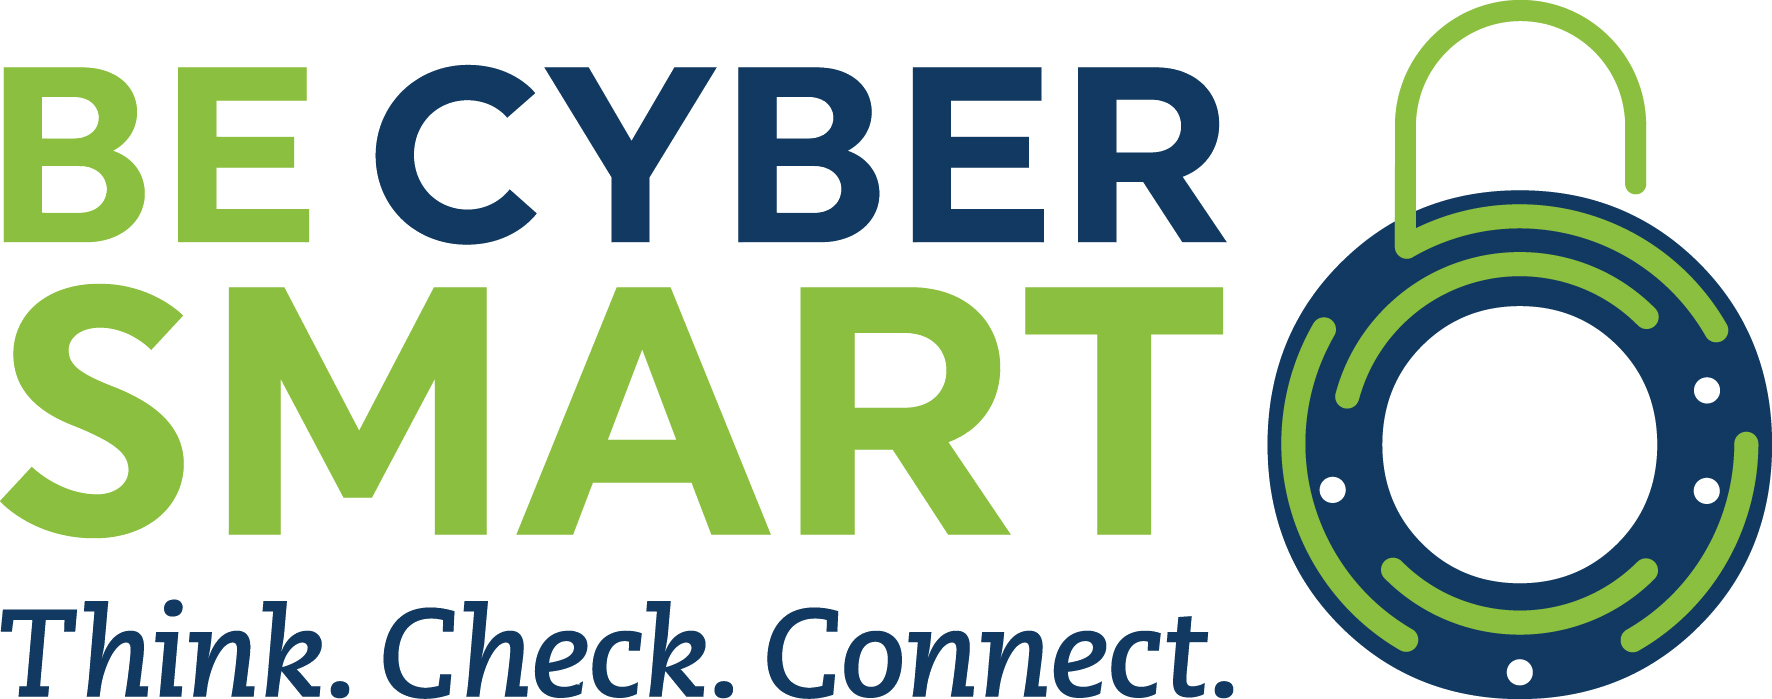 Be cyber smart think check connect